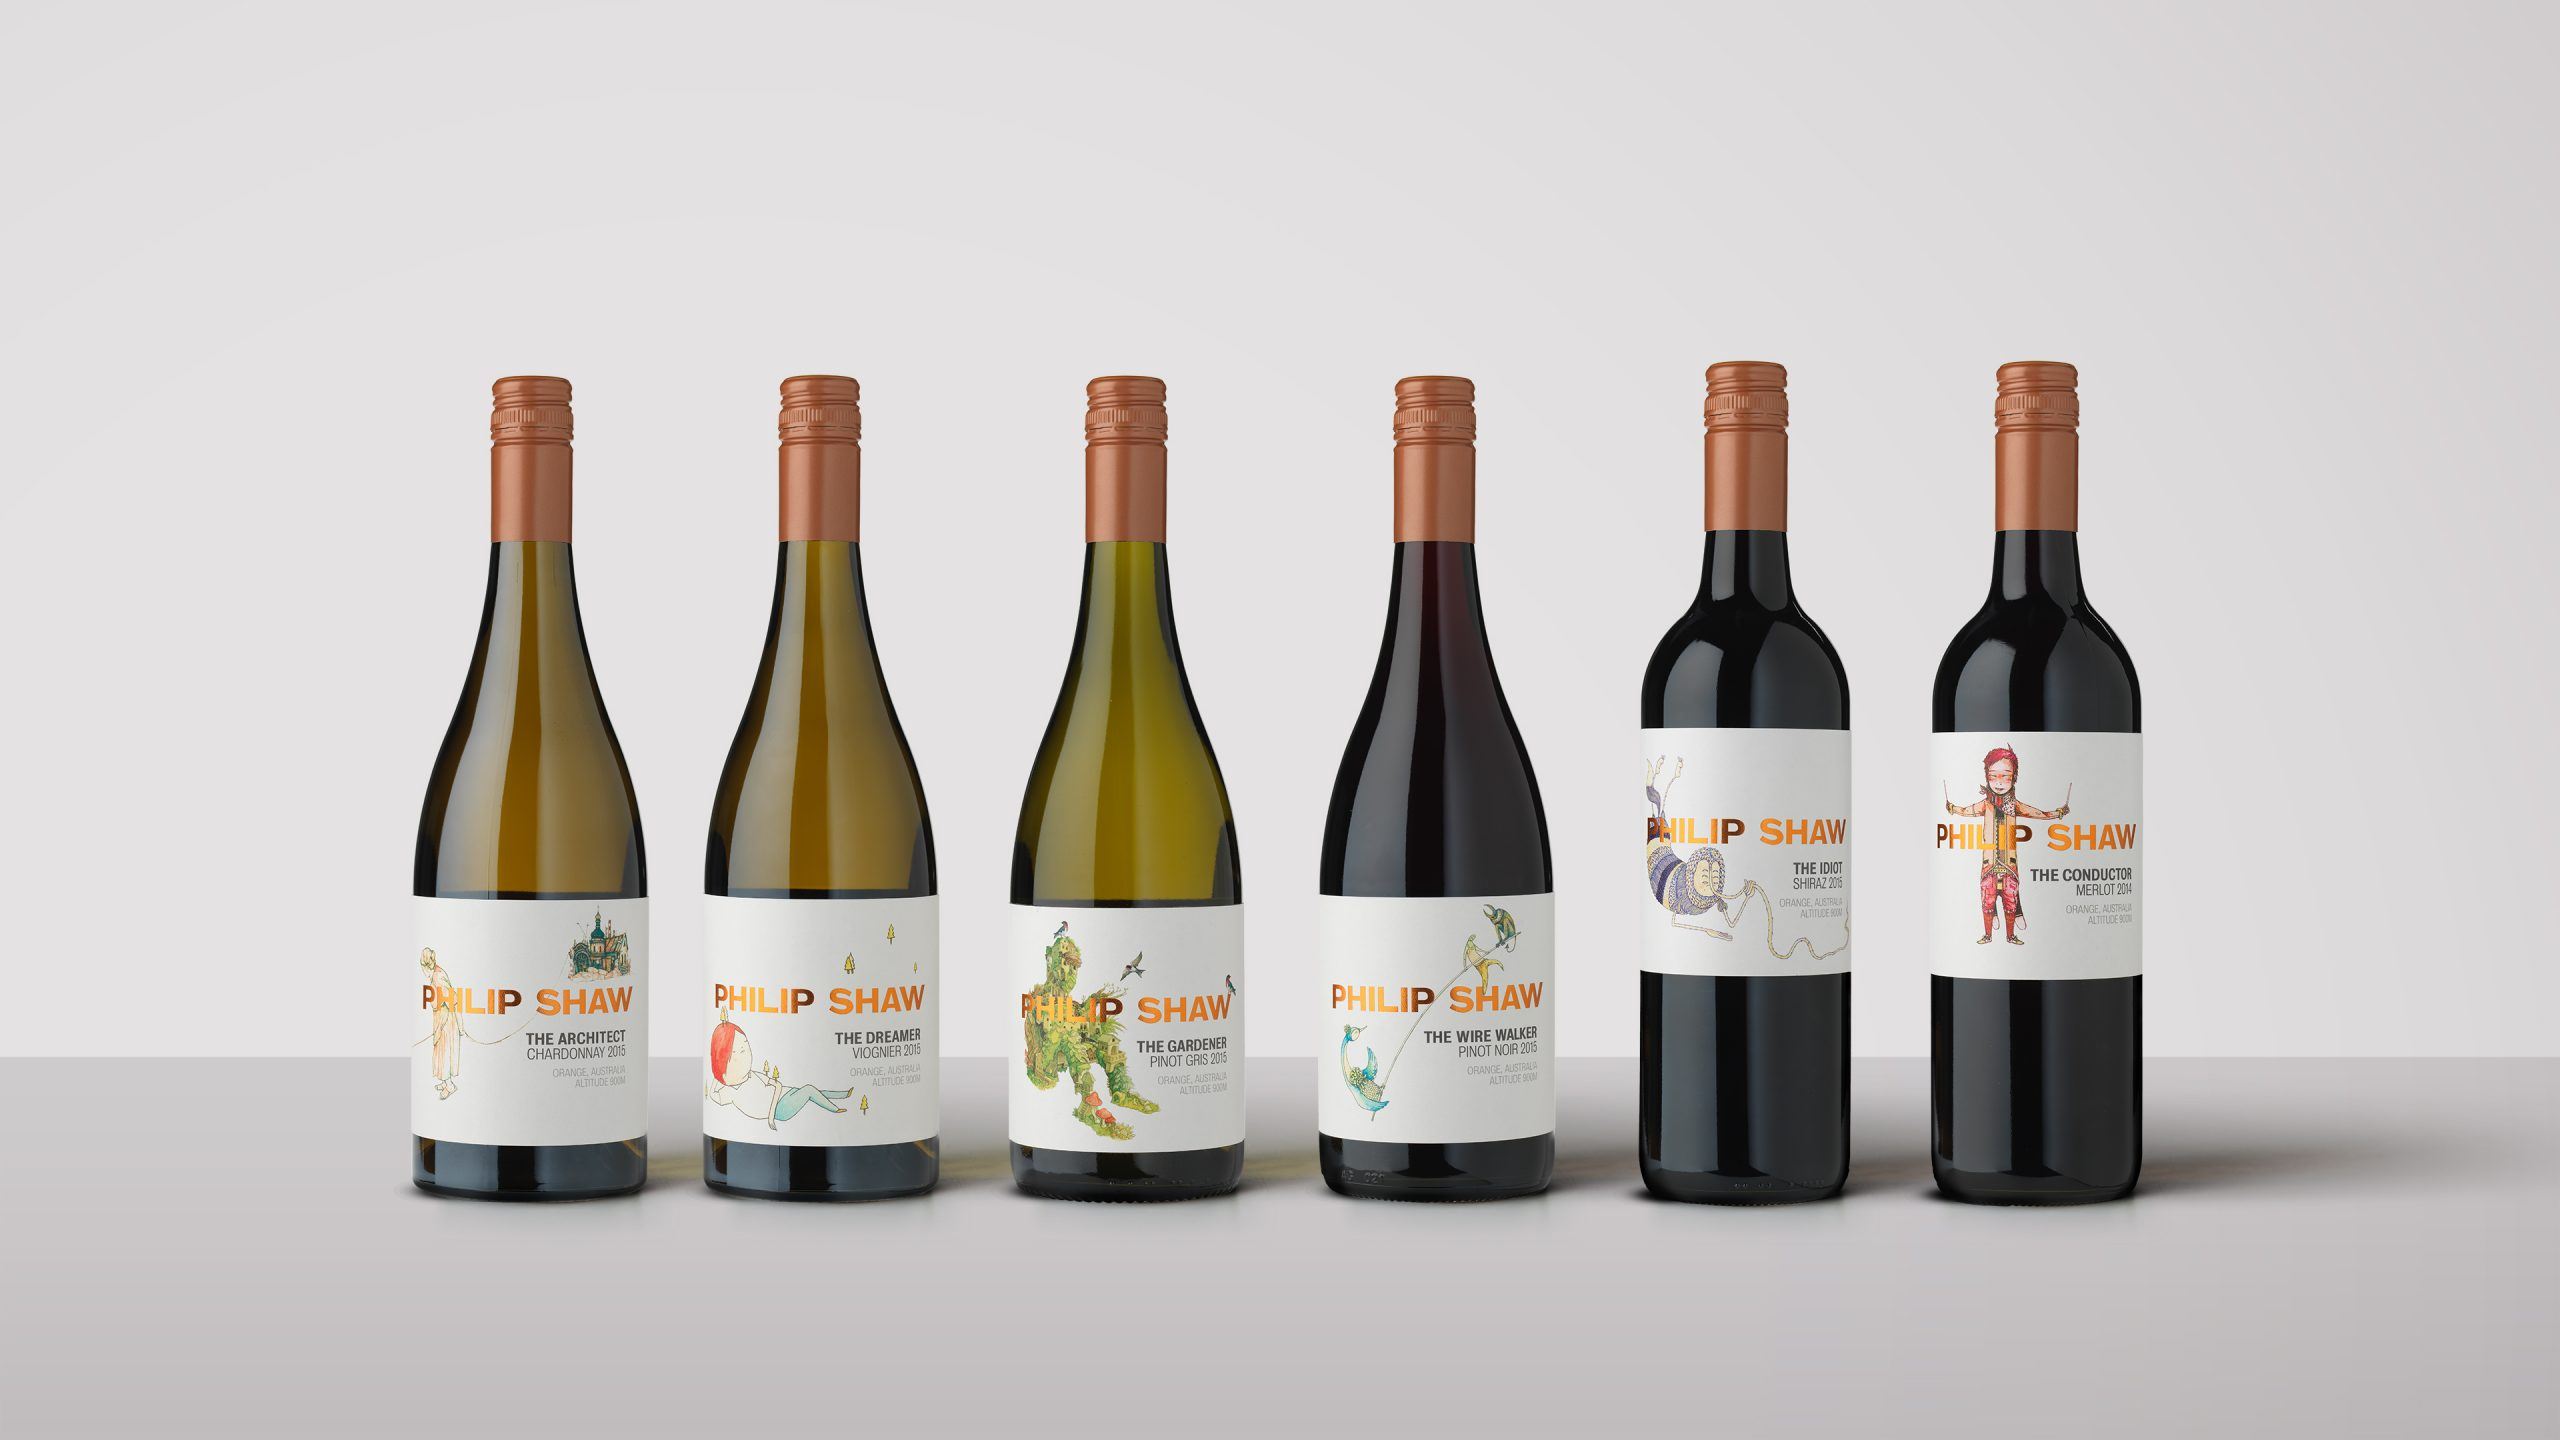 Philip Shaw Wines: The Characters Series. Wine bottles featuring uniquely named character illustrations such as the Idiot, the conductor, the wire walker, the architect. Labels designed by Helium Design Melbourne.